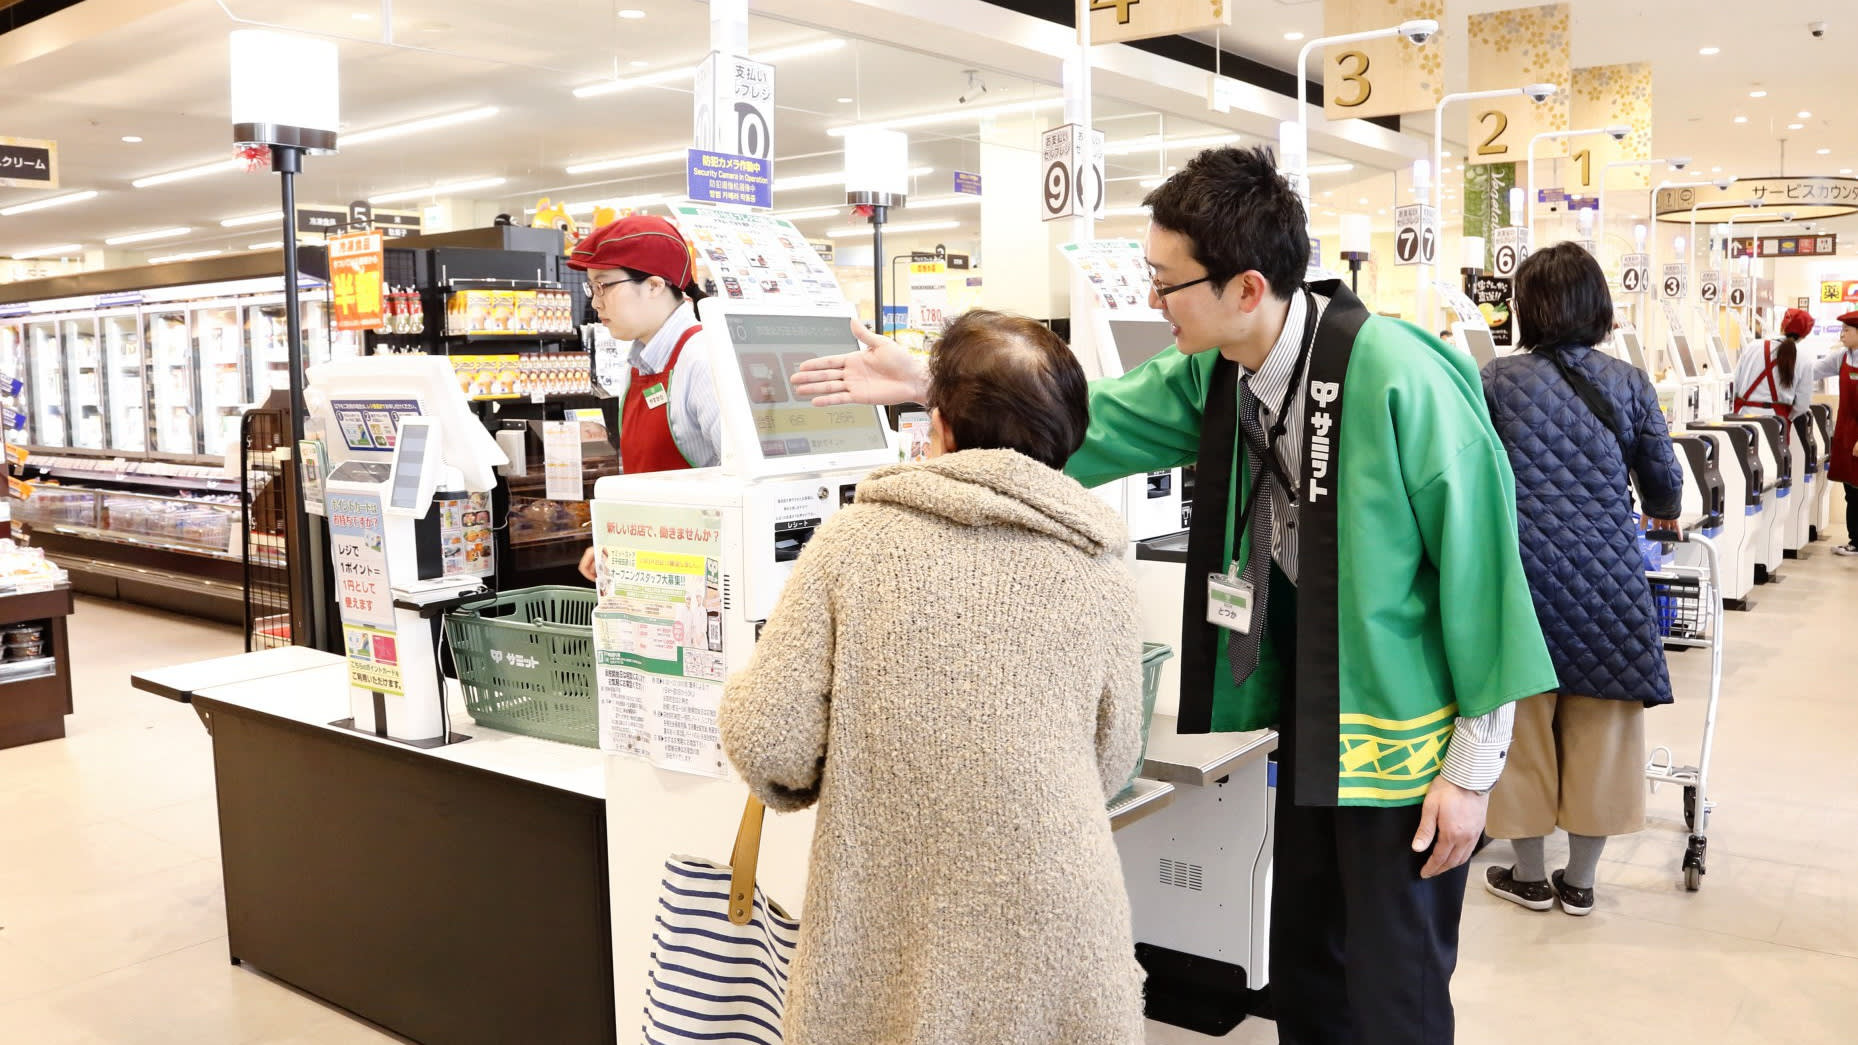 A Summit supermarket in Tokyo. Parent company Sumitomoplans to bring the Japanese-style retail experience to Vietnam.